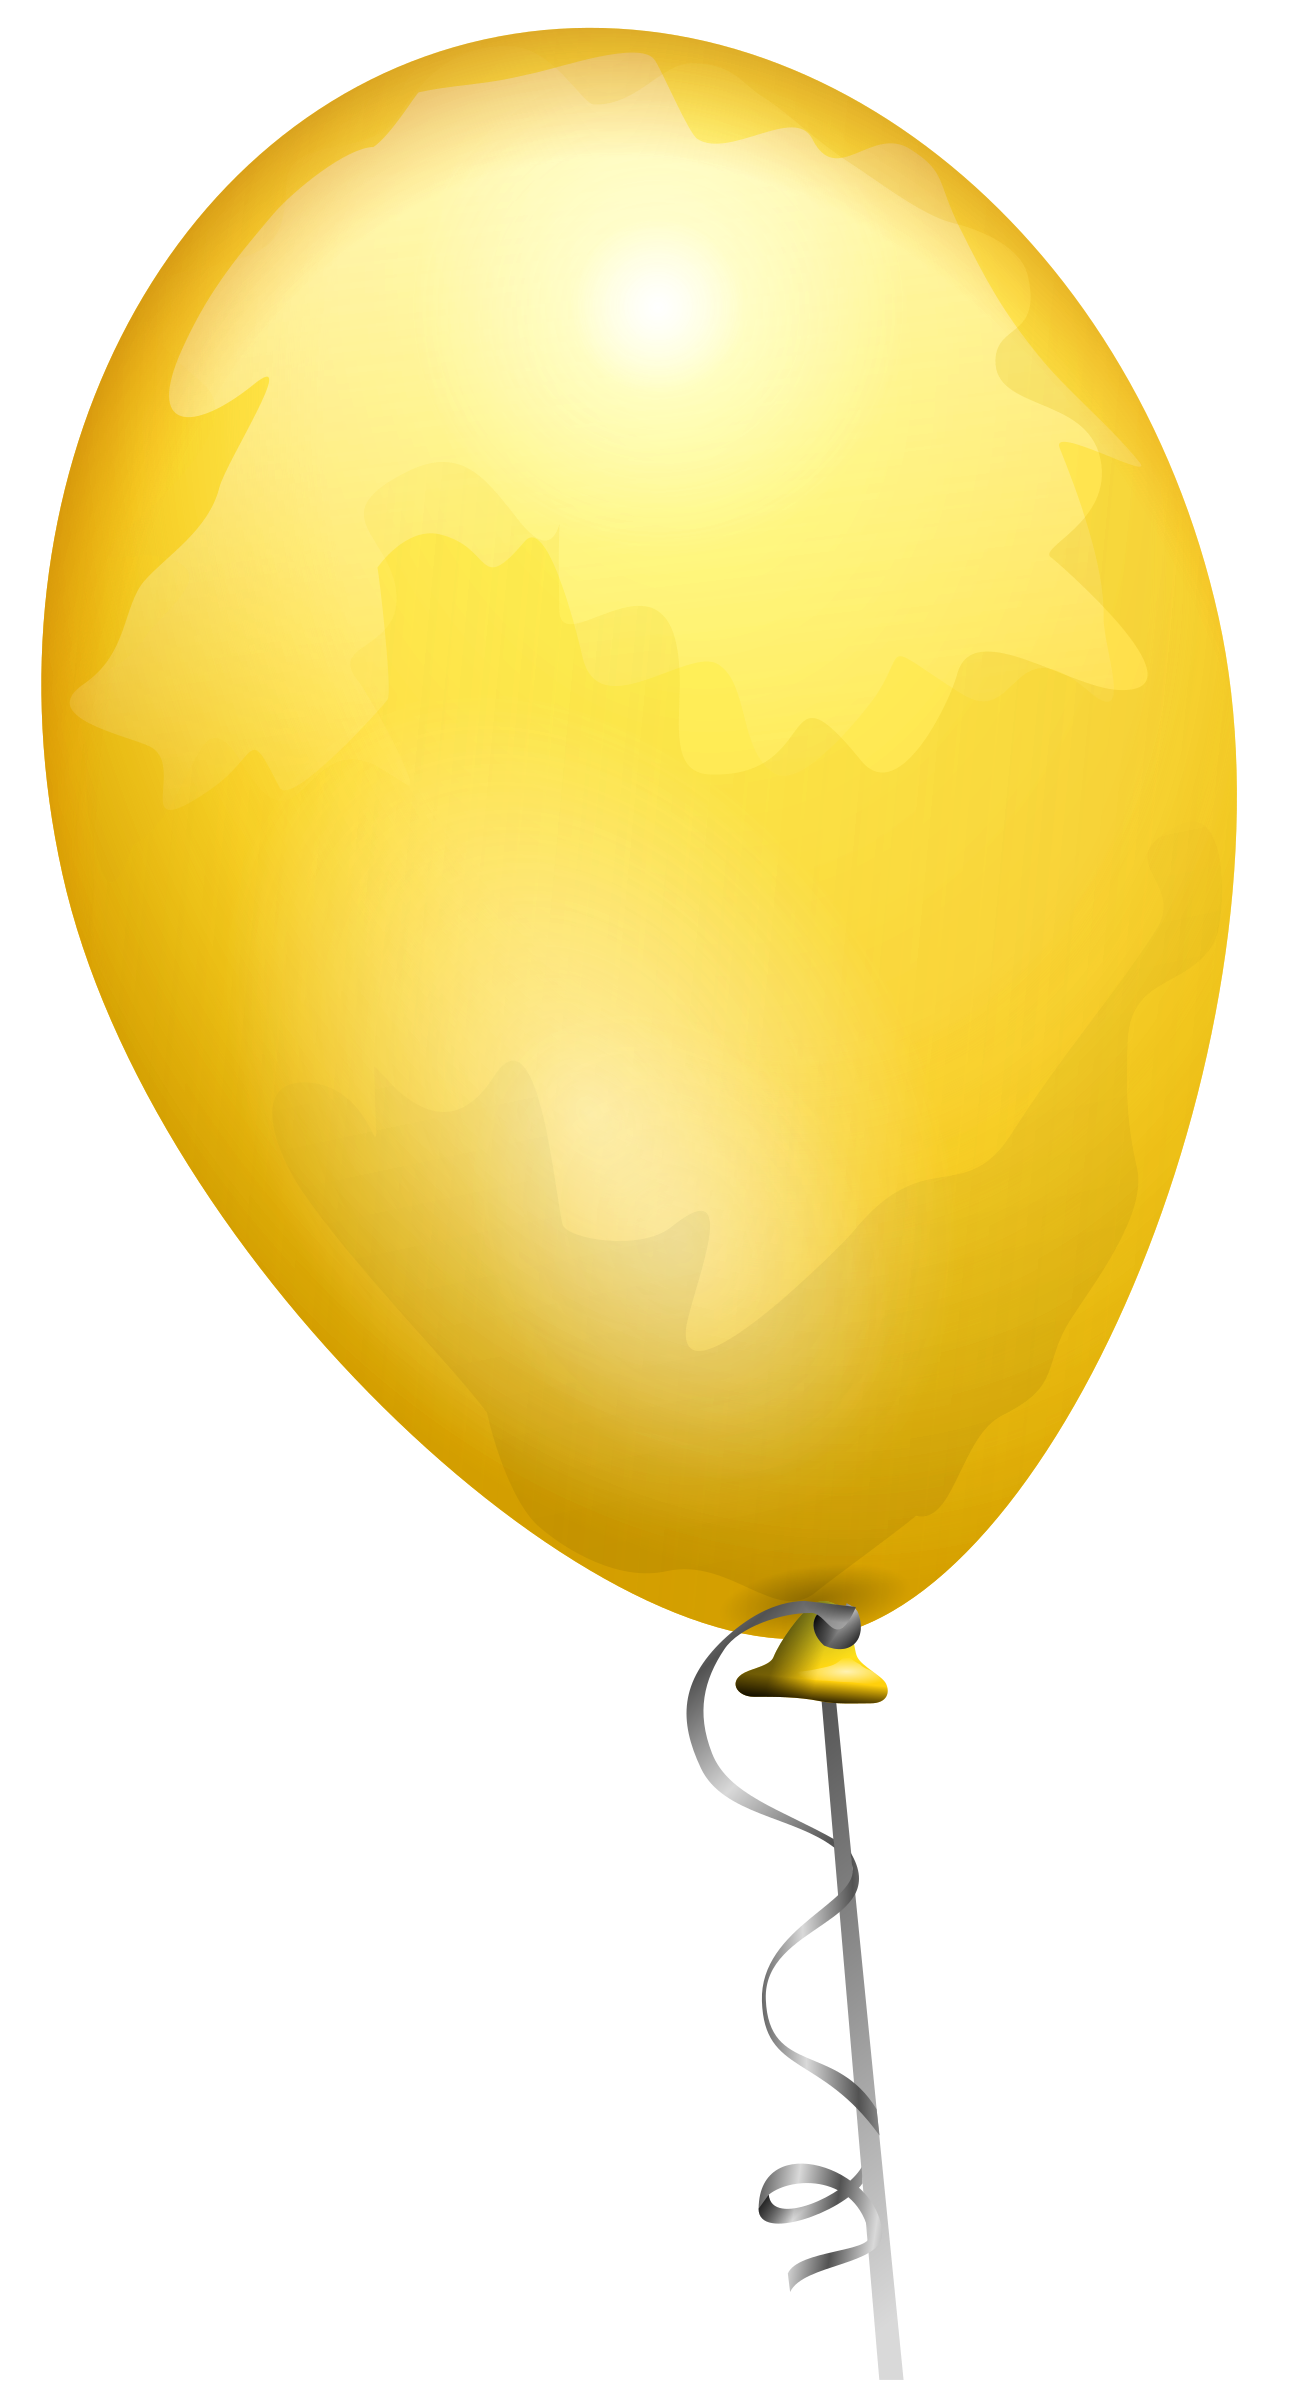 balloon-yellow-aj by AJ